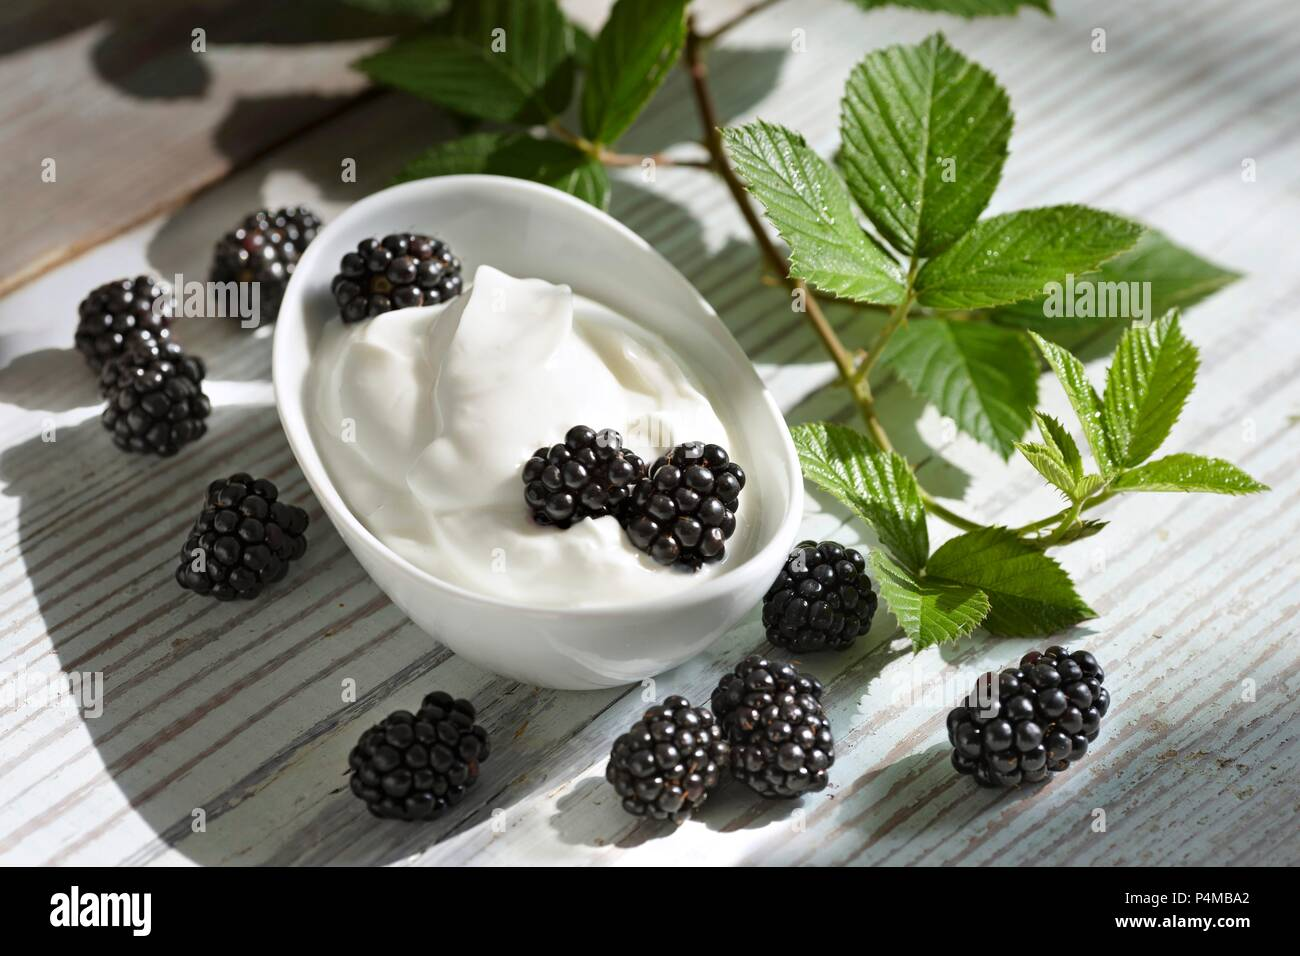 Yogurt with blackberries and leaves - Stock Image